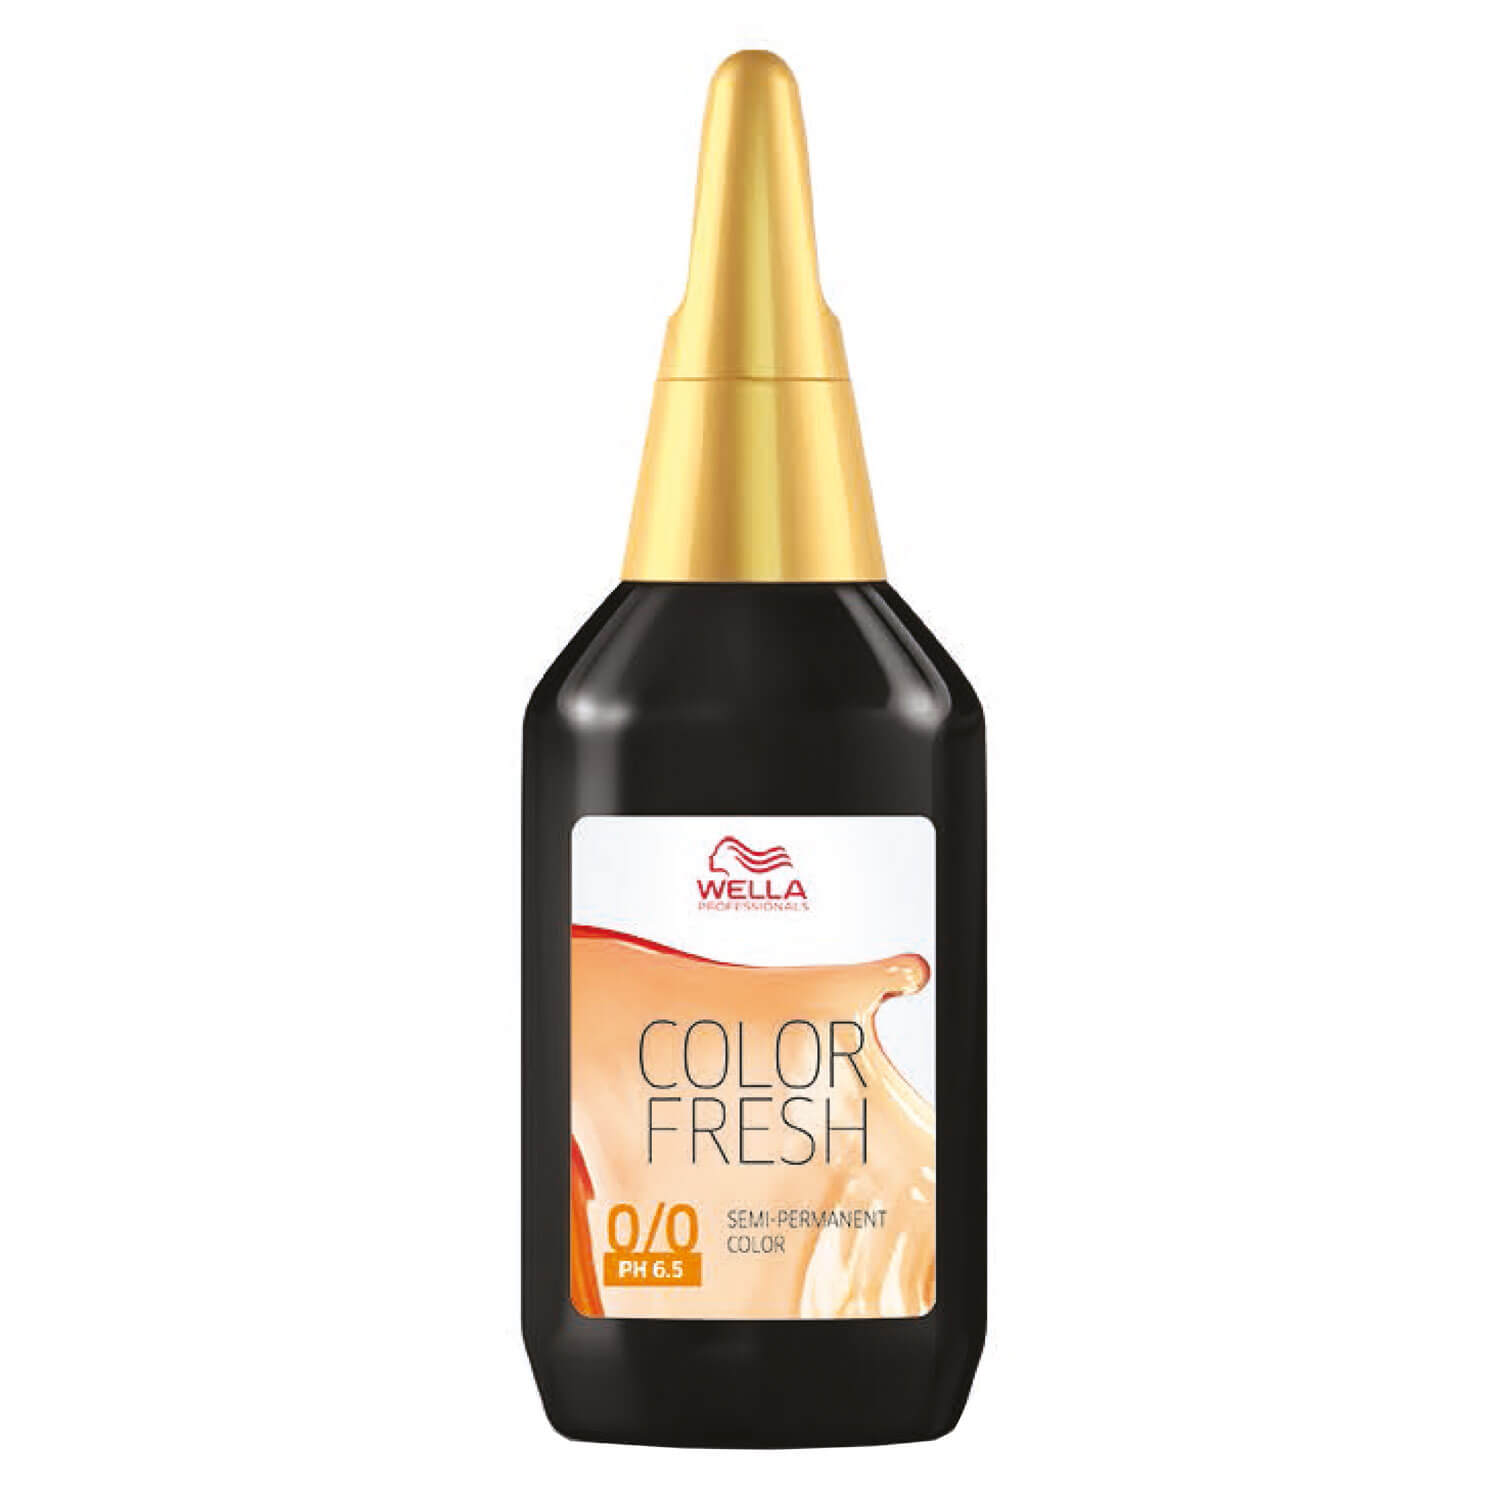 Color Fresh - 10/39 hell-lichtblond/gold-cendre